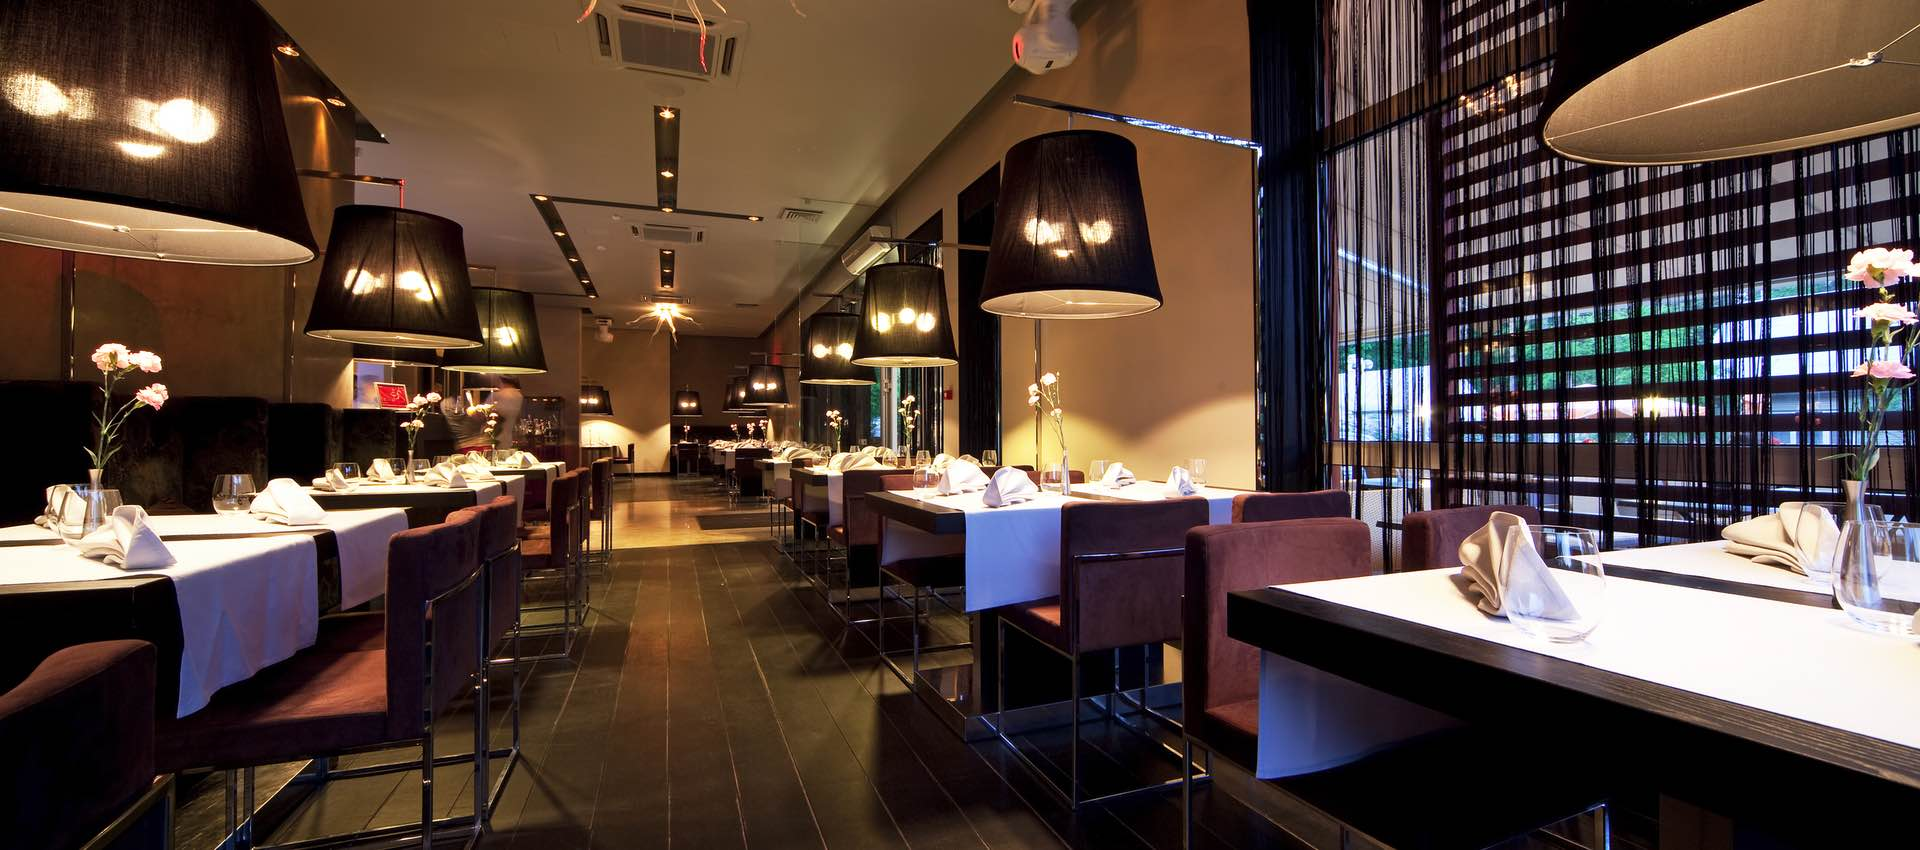 Hotel & Restaurant Cleaning Services in Melbourne CBD